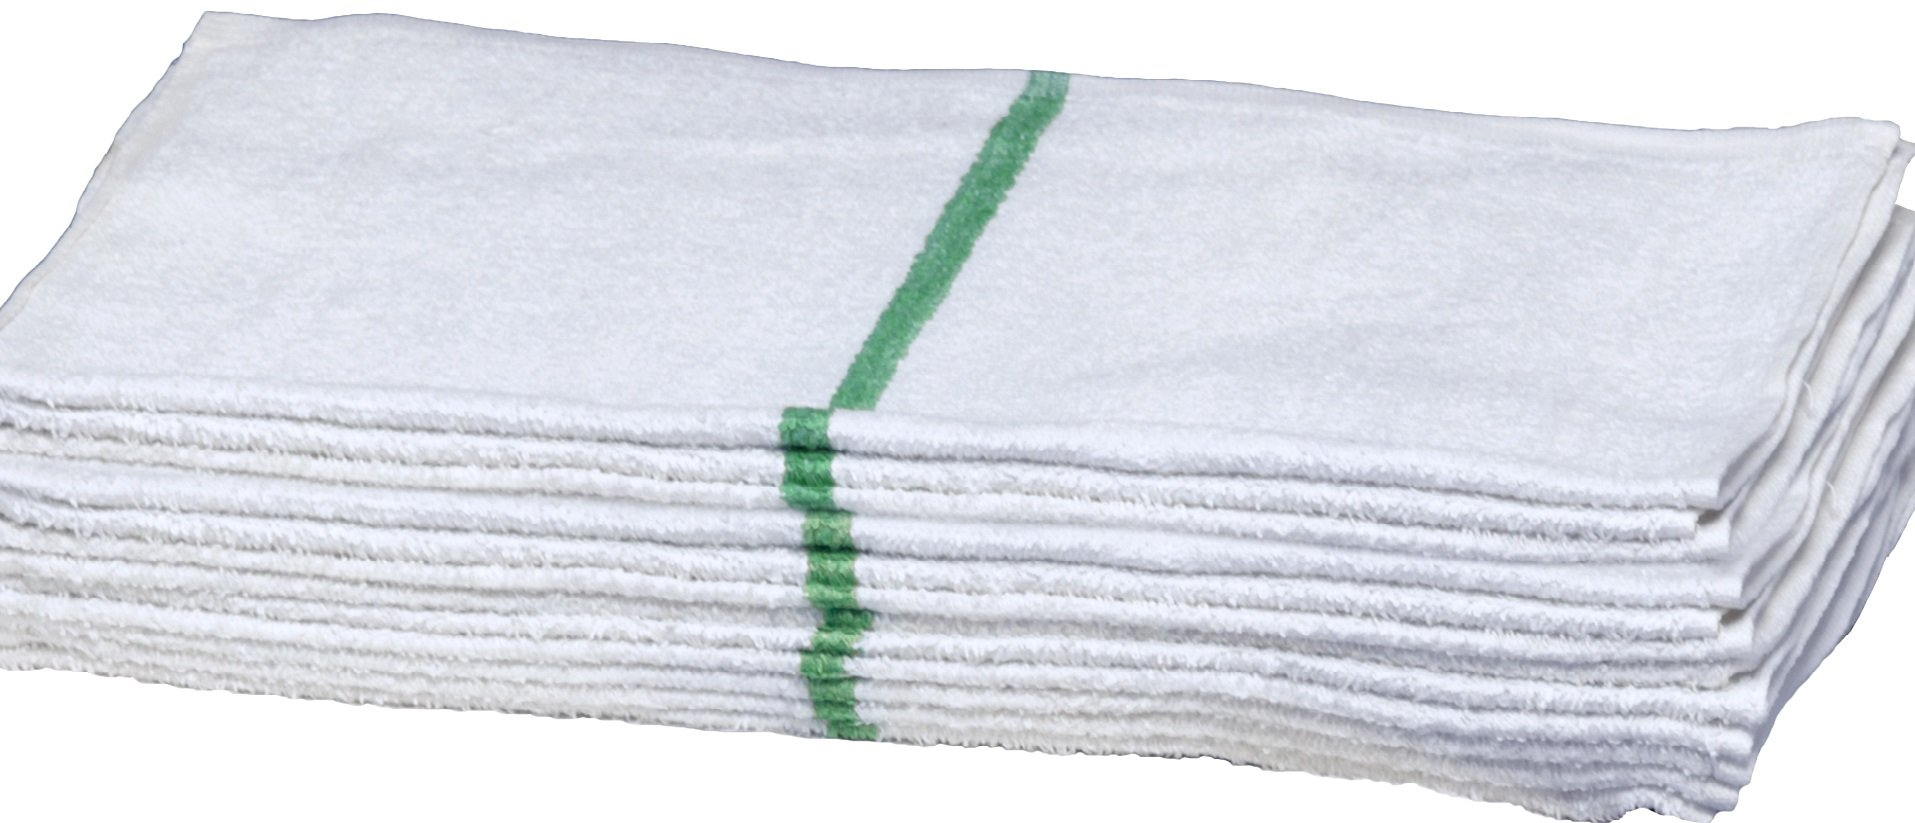 Premium White Hand Towels with GREEN Stripe for Bathroom-Hotel-Kitchen-Spa-Gym-Golf-Set - All Natural Cotton, Soft Ring Spun, Highly Absorbent Hotel Grade, 16x27 Inches - Eco-Friendly, Set of 12